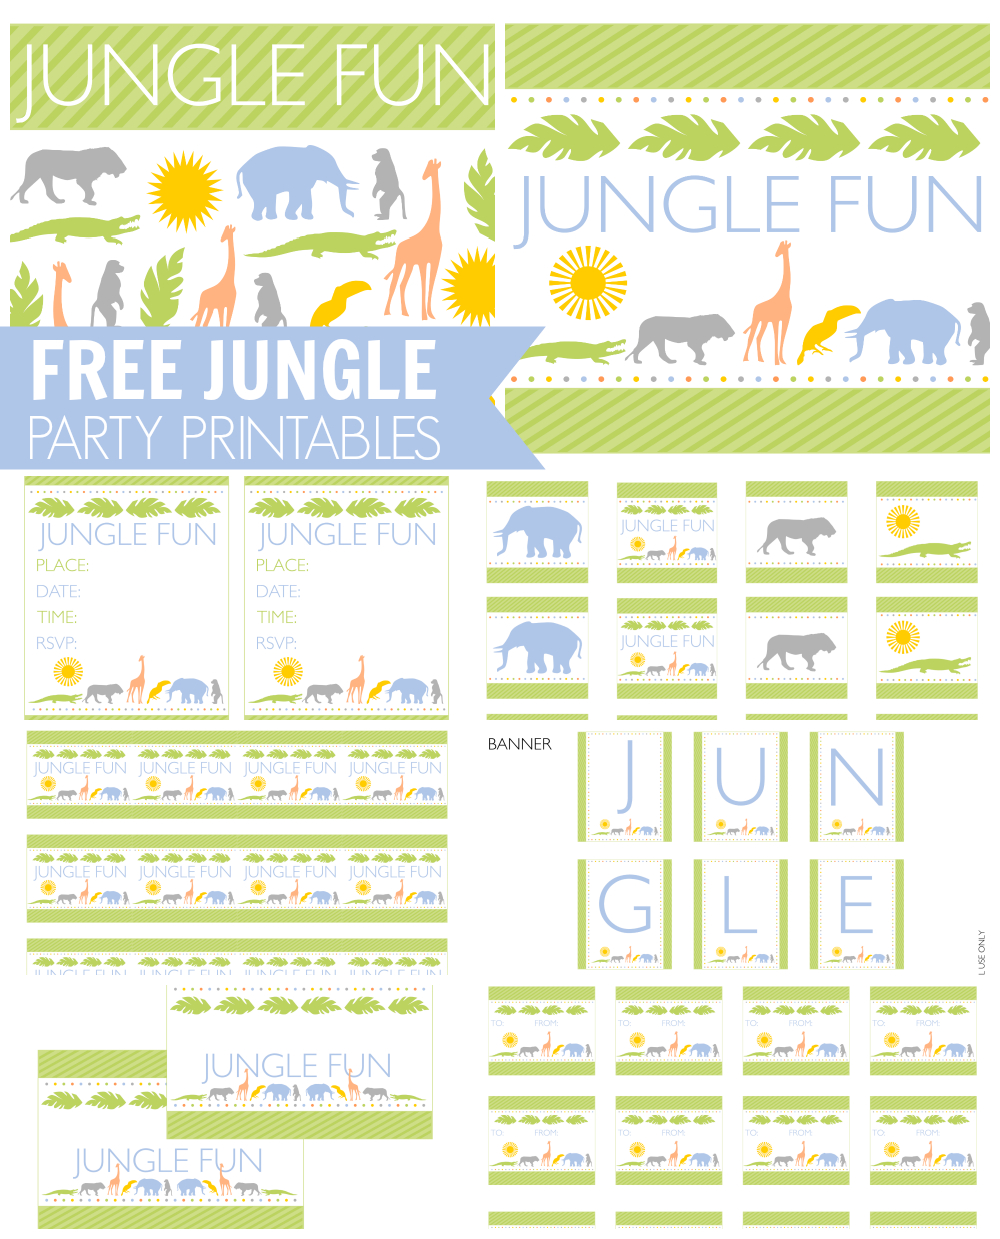 Free Jungle Party Printables From Printabelle | Catch My Party - Free Jungle Printables